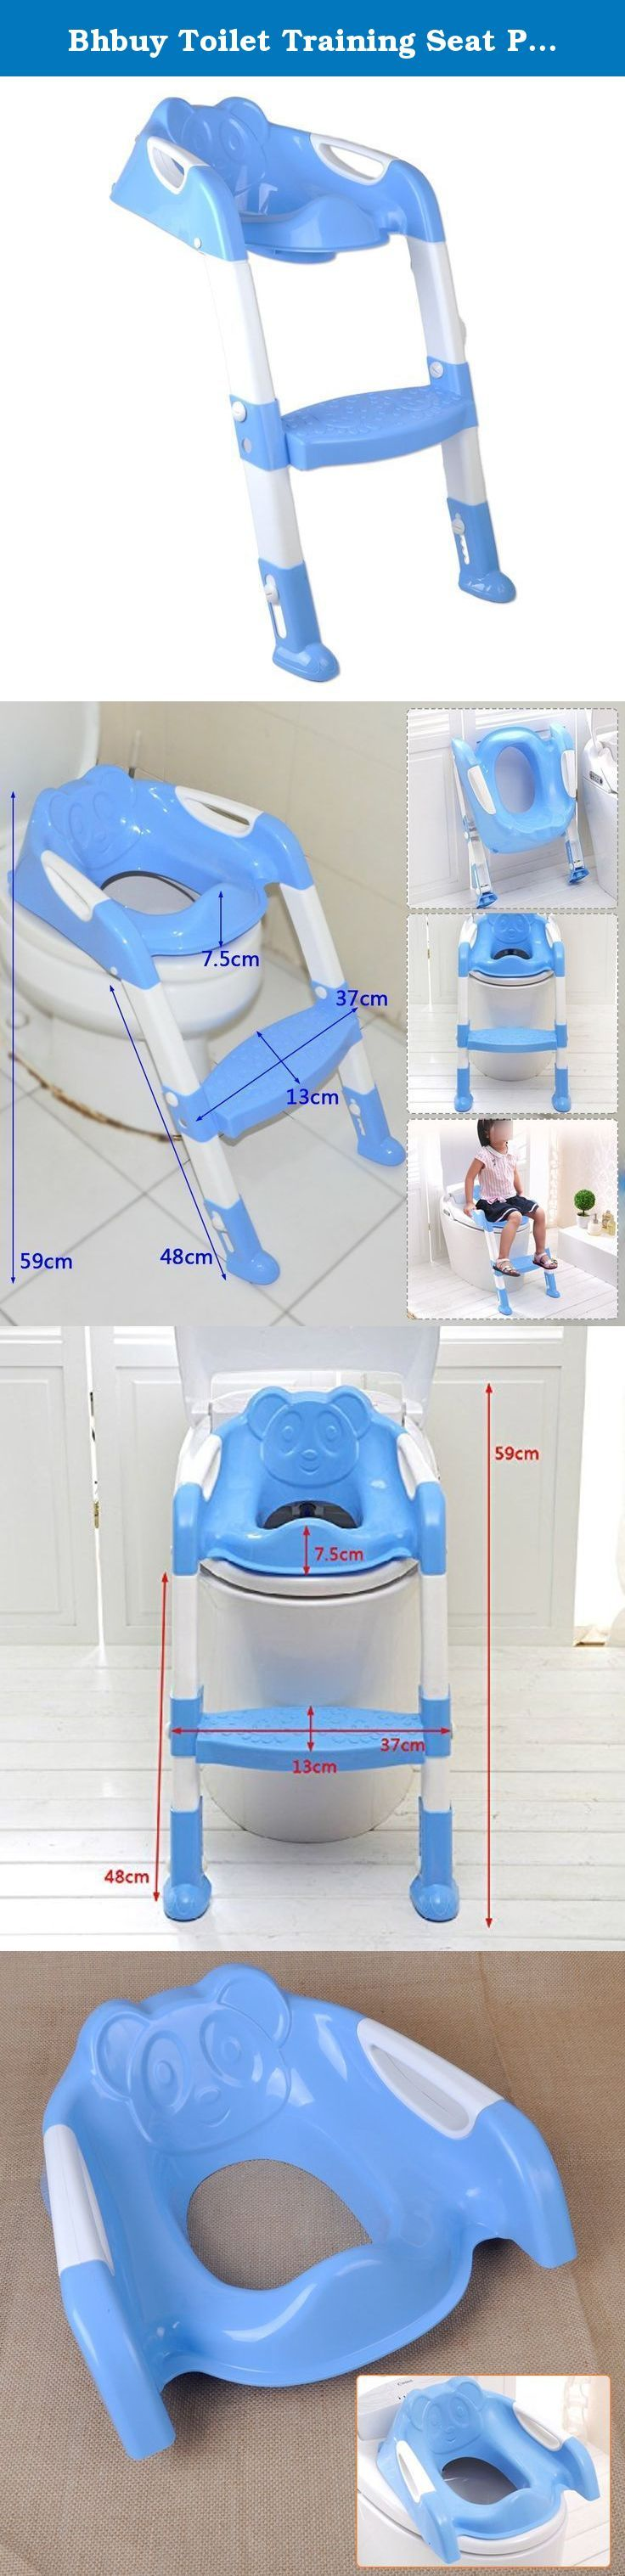 Bhbuy Toilet Training Seat Potty Chair Toddler Potty Trainer Folding Adjustable Kids Step Stool (Blue). Baby Steps easy folding toilet seat cover and step. Perfect for completing your little ones potty training, our toilet seat cover features a wide cushioned seat with splash guard and easy to grip no-slip handles perfect for even tiny hands. The extra wide step helps your child easily access your home toilet with ease and safety. Extra wide floor pads give the unit a firm and safe anchor...